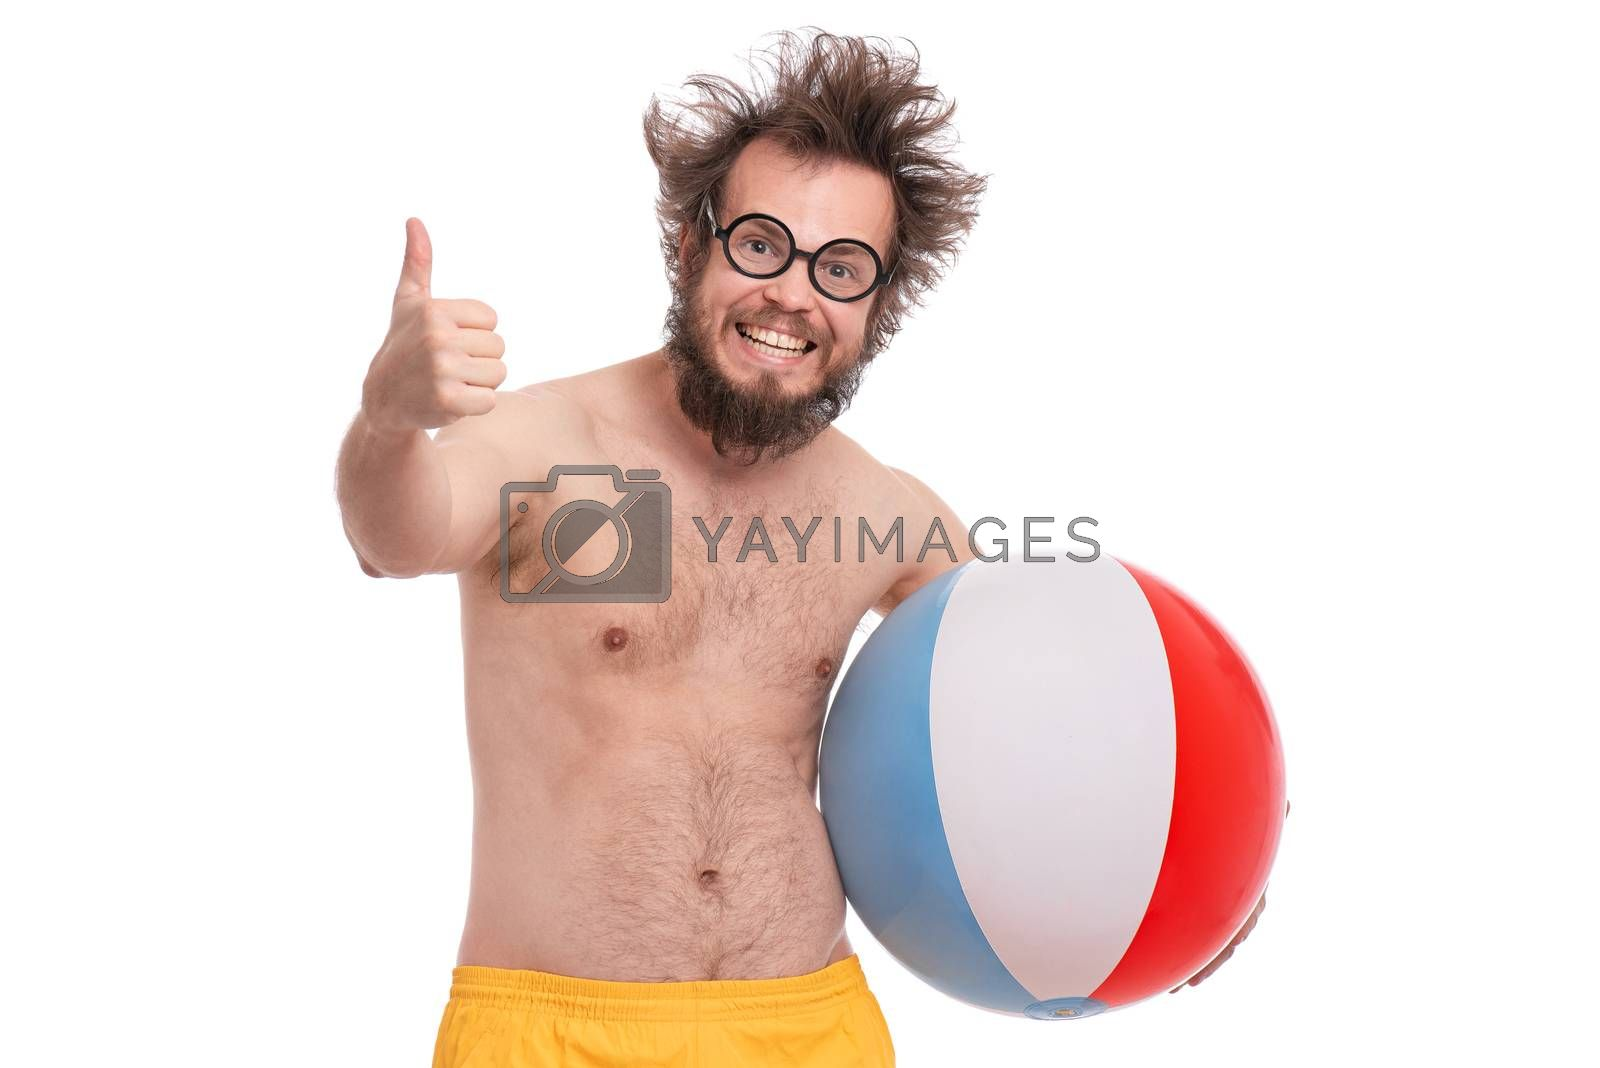 Crazy bearded Man with funny Haircut in eye Glasses making Thumbs up Gesture. Happy and silly tourist, isolated on white background. Cheerful naked man holding Sea Ball.